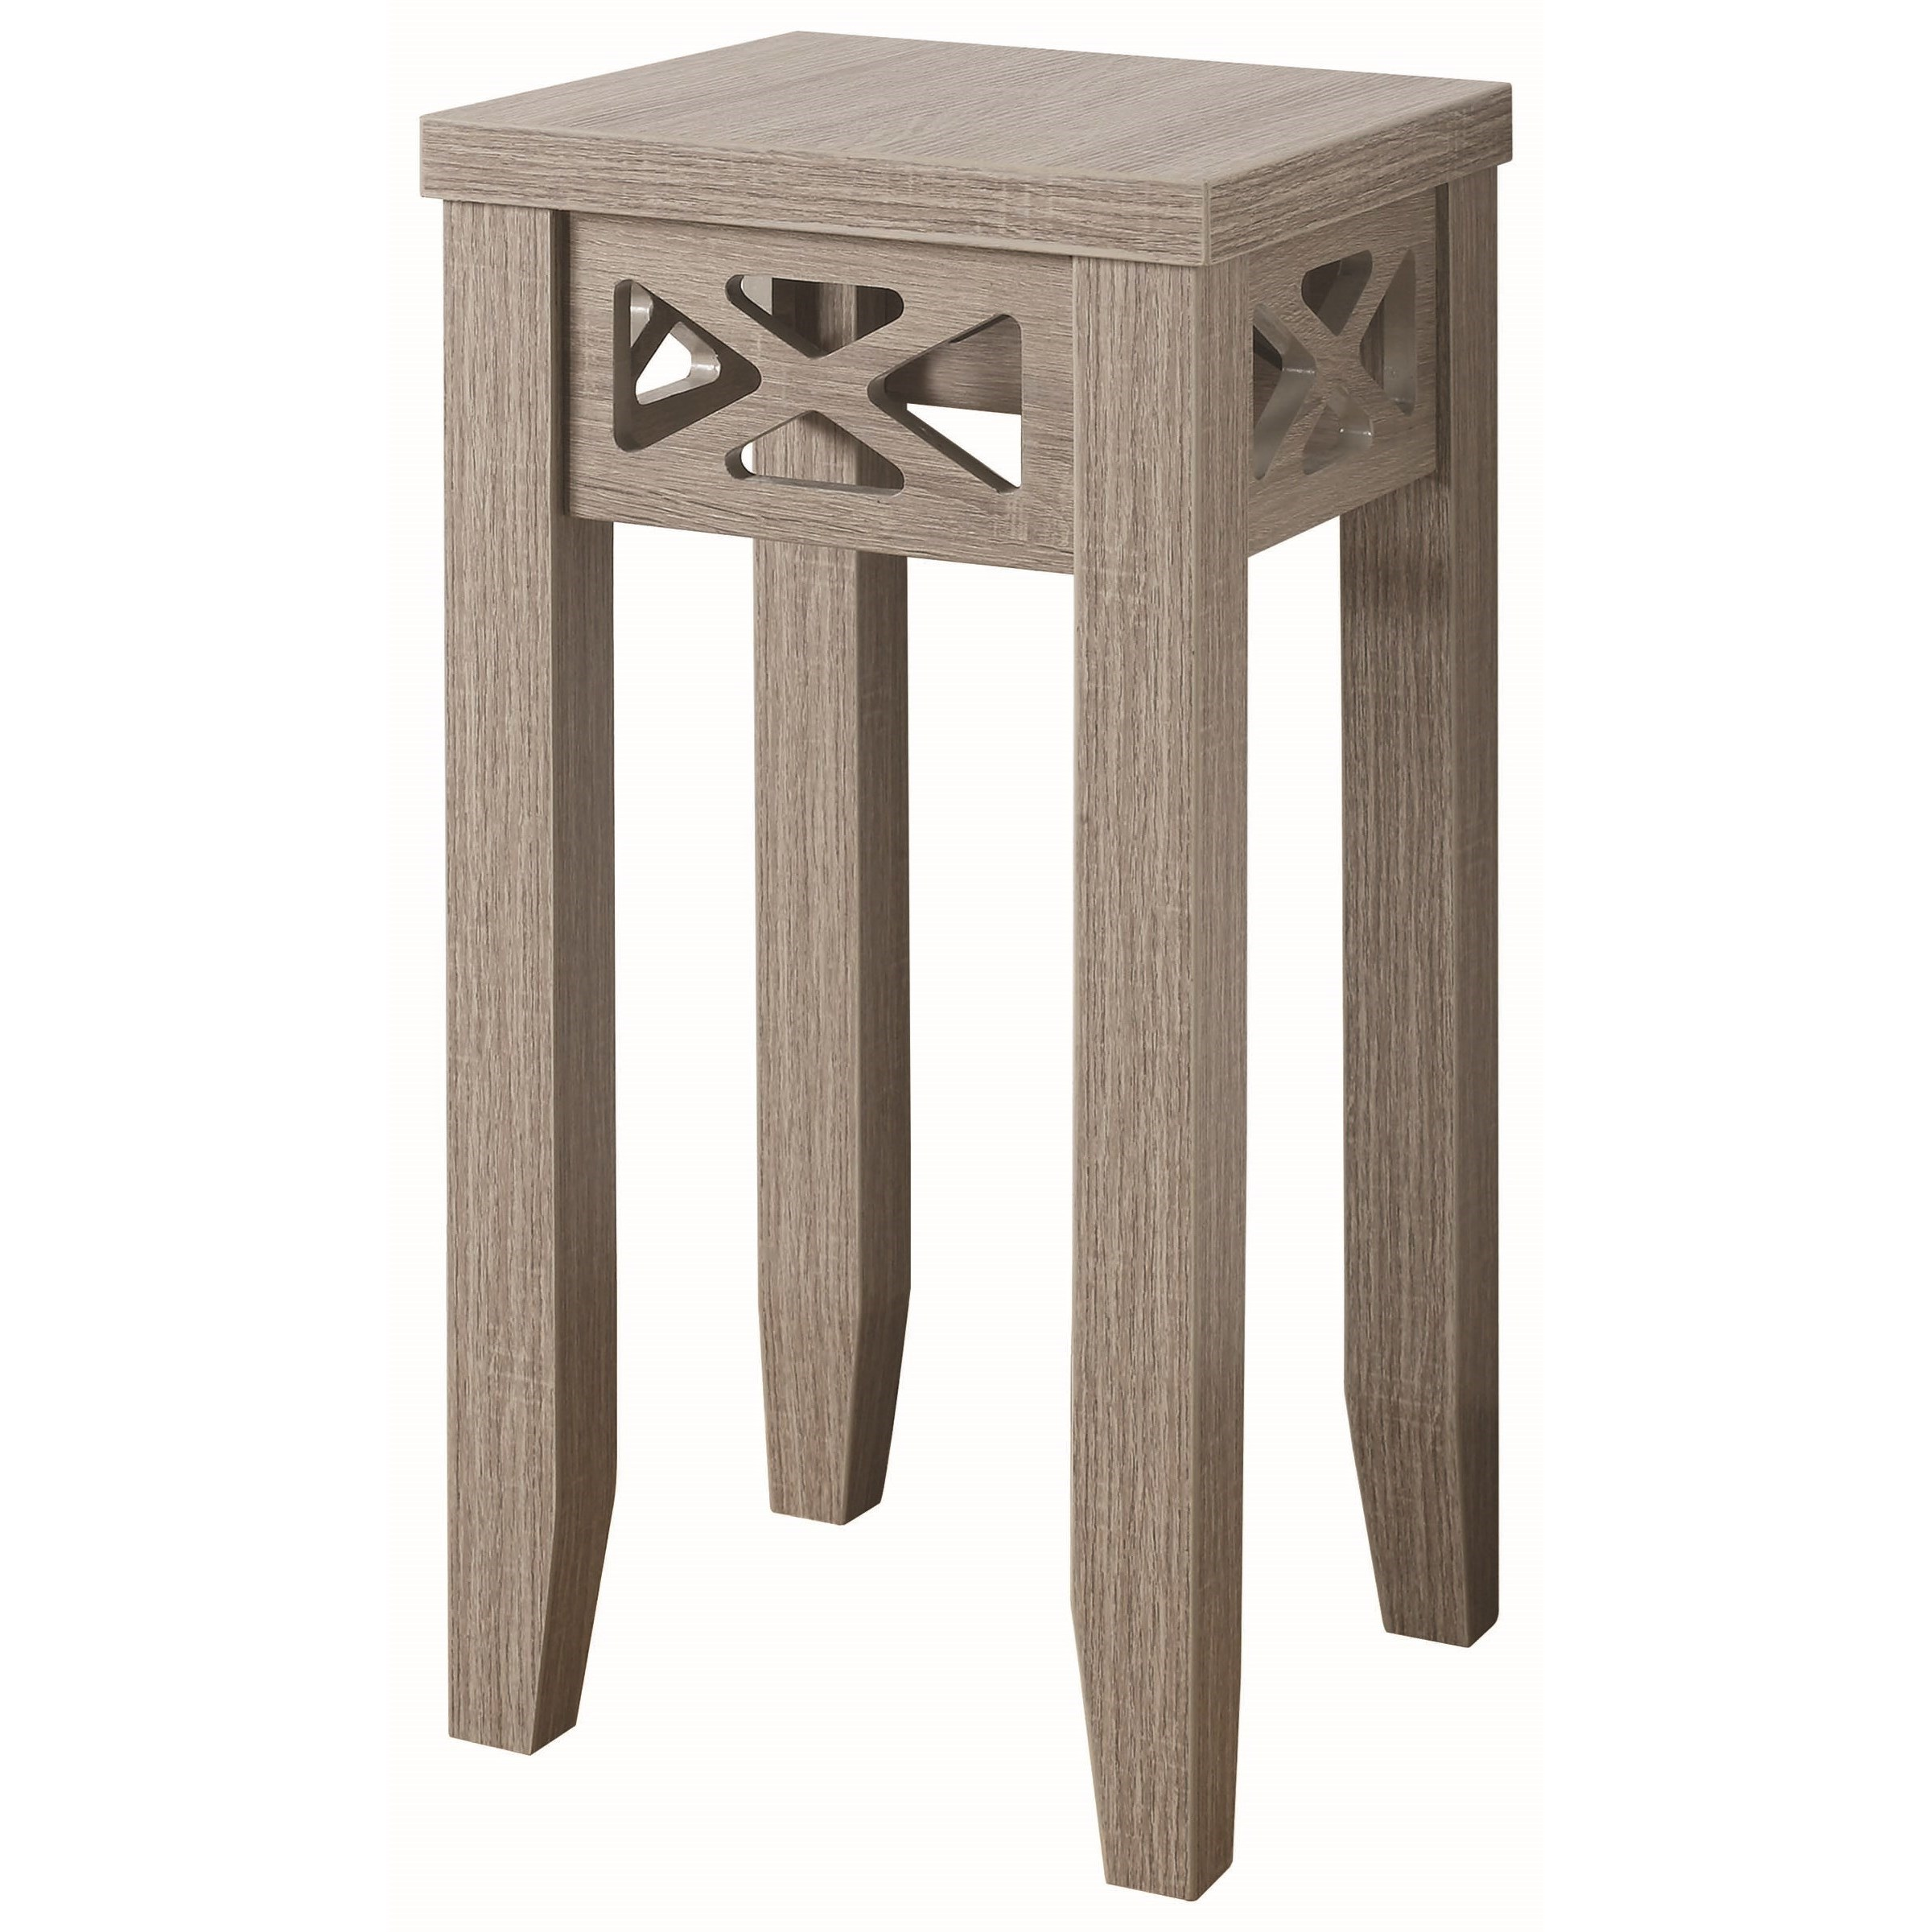 coaster accent tables table with triangle trim products color coas pedestal wood coffee tray west elm abacus floor lamp target sleeper sofa porch swing villa furniture glass